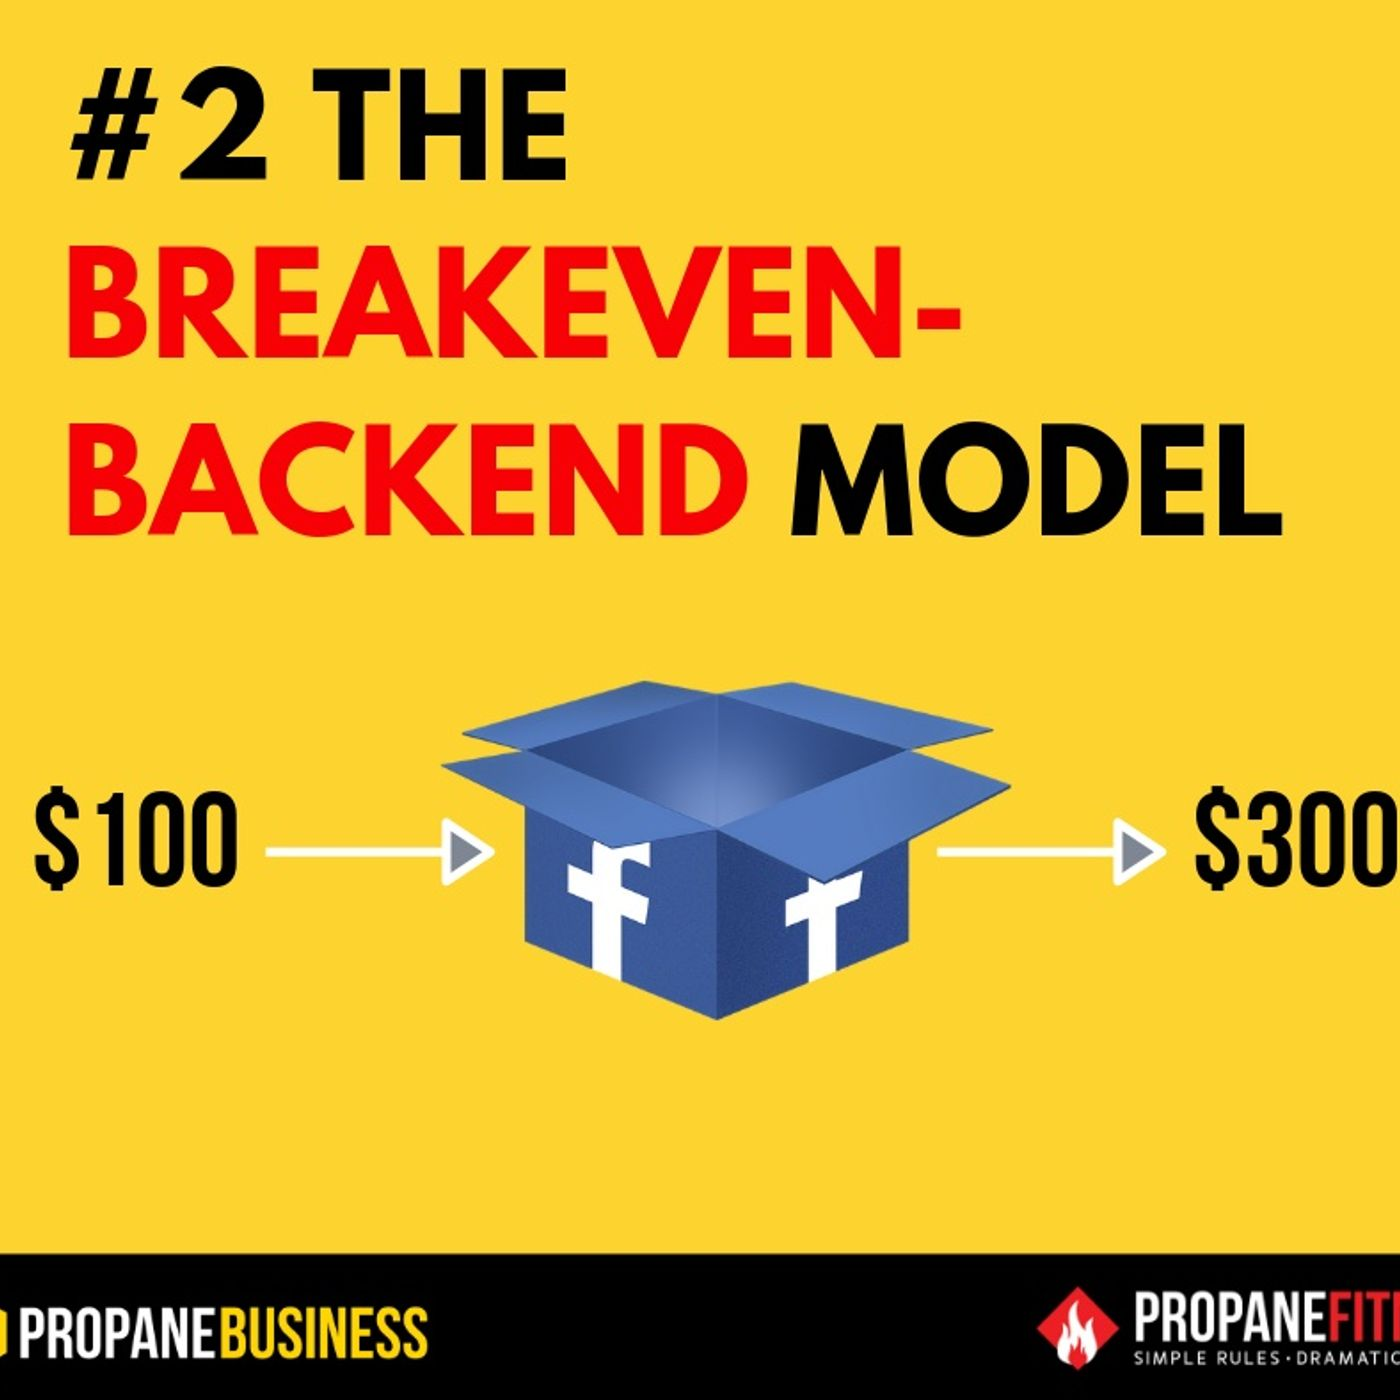 2. The Breakeven Backend Model: How to put $100 into advertising and make $300 back, every time.